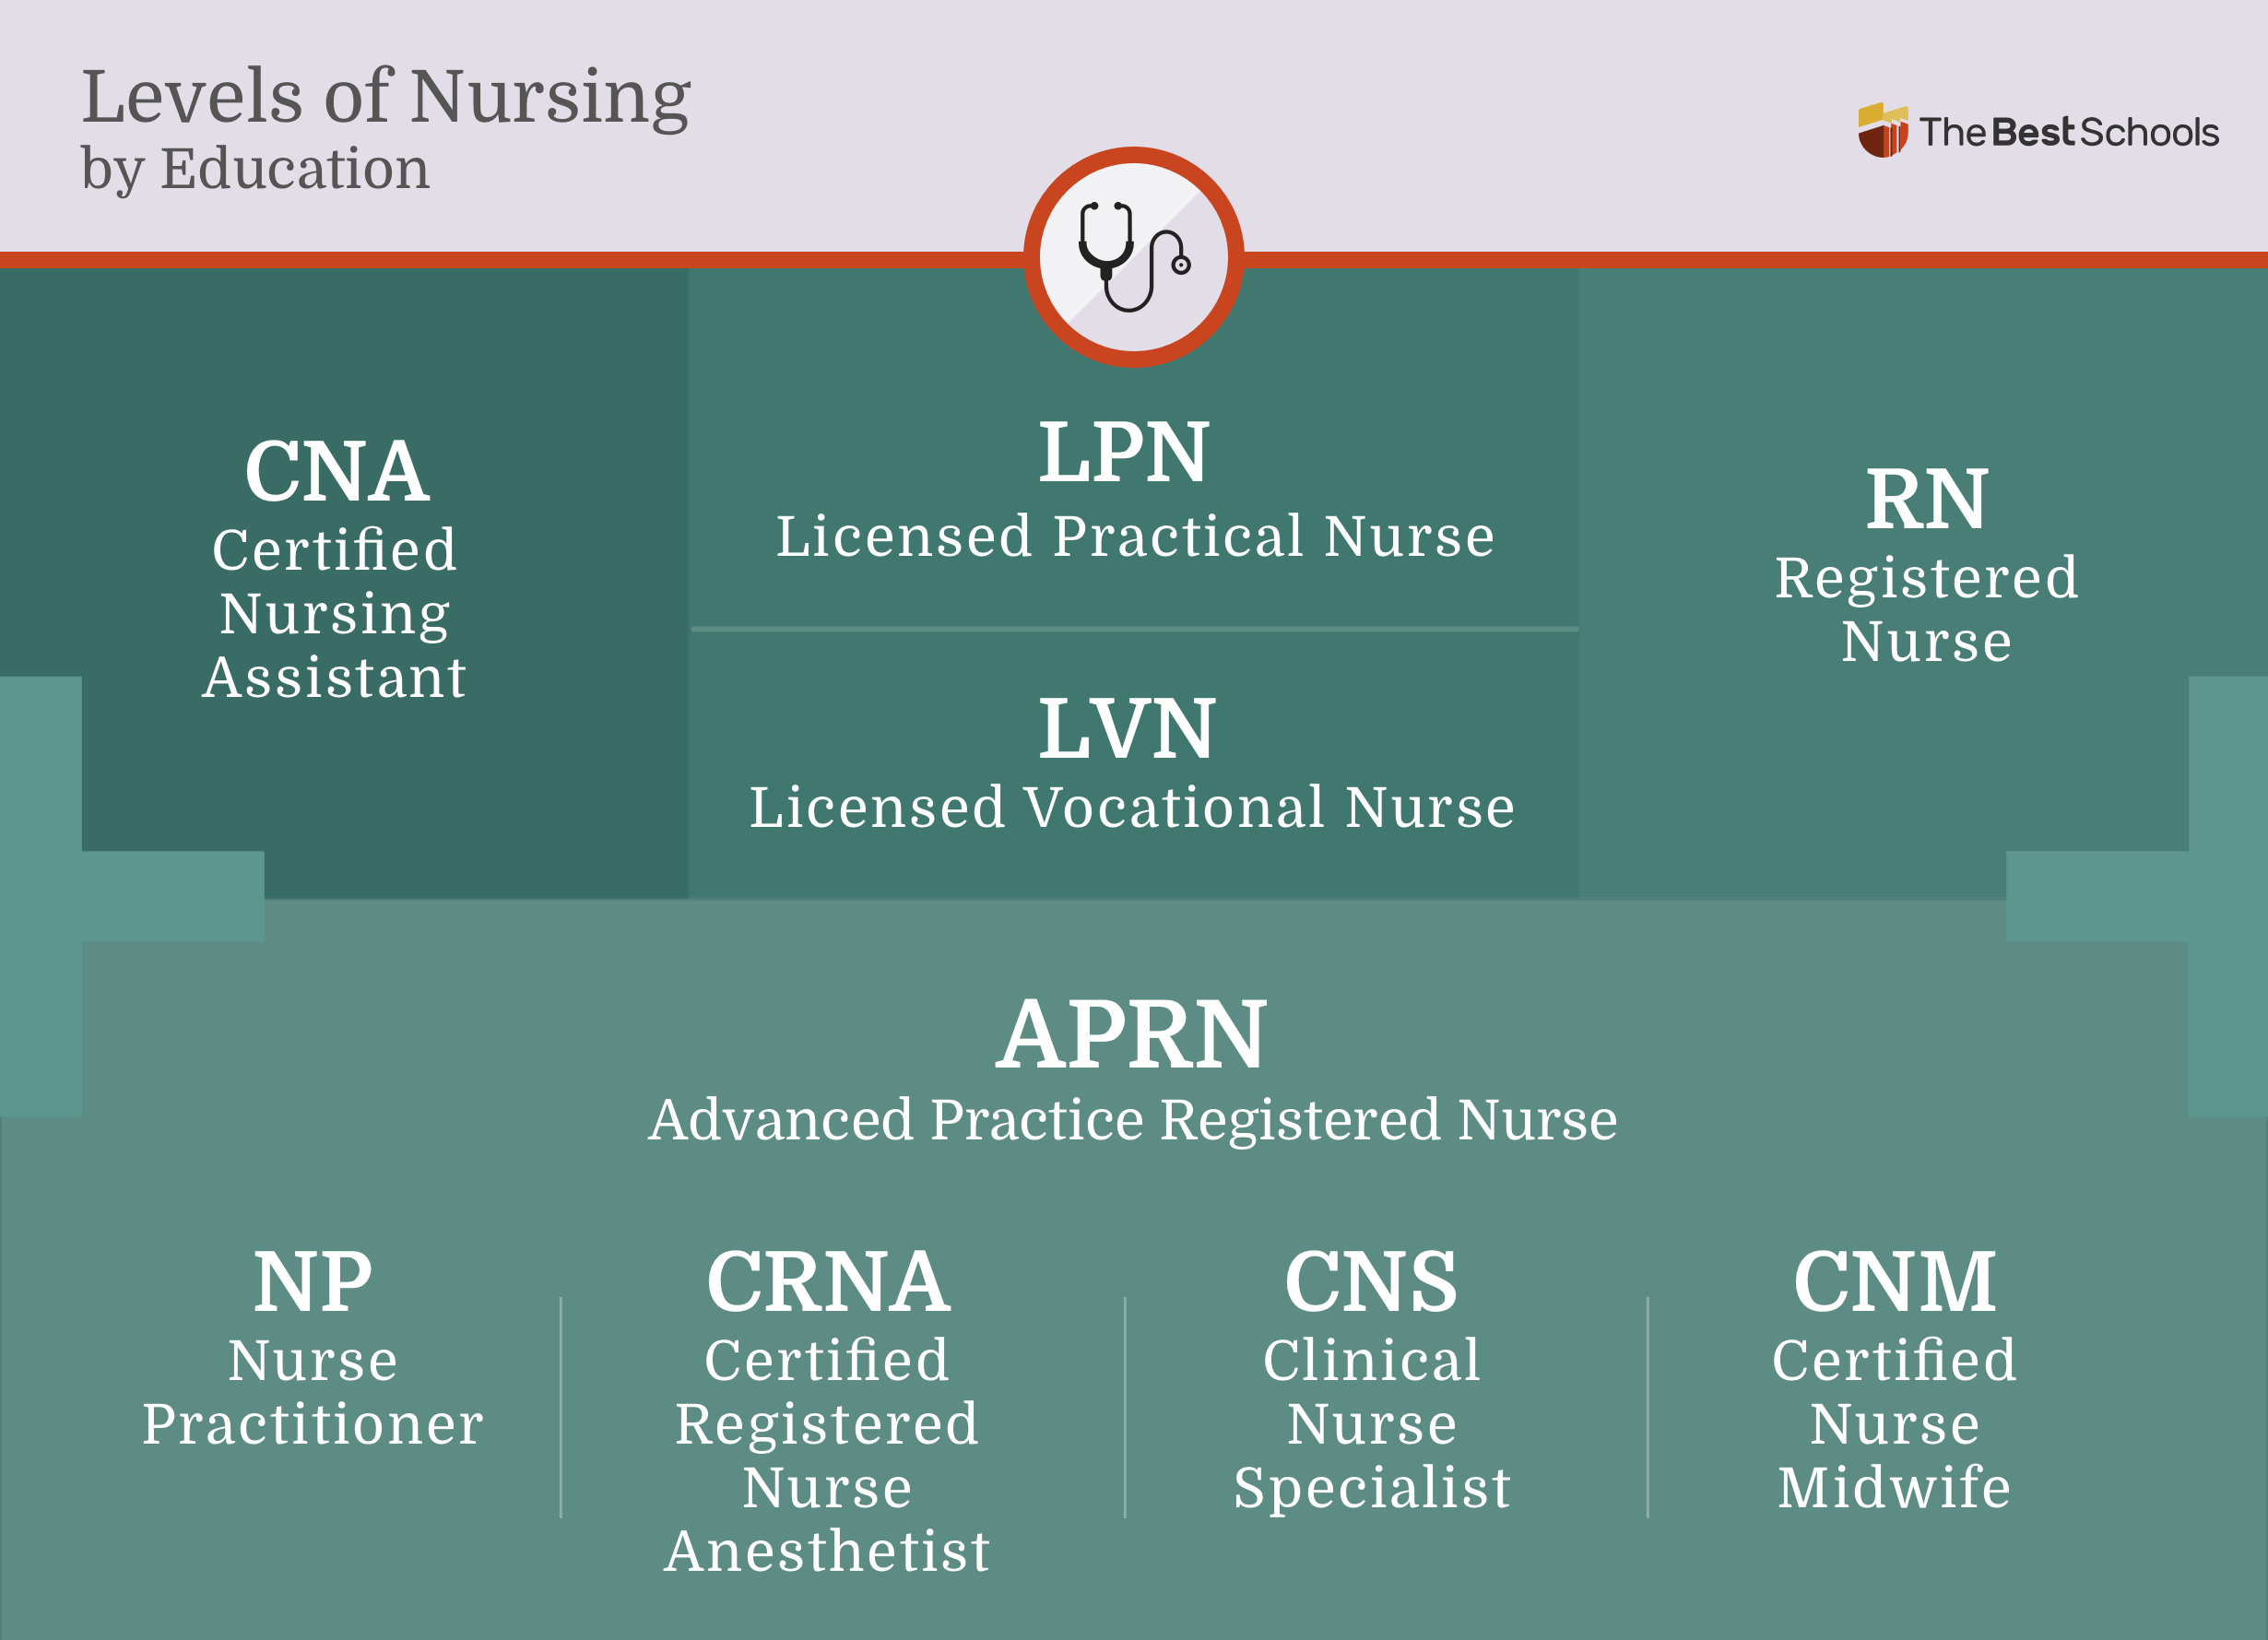 Image titled: Levels of Nursing by Education. Certified Nursing Assistant (CNA), Licensed Practical Nurse (LPN), Licensed Vocational Nurse (LVN), Registered Nurse (RN). Advanced Practice Registered Nurse (APRN), Nurse Practitioner (NP), Certified Registered Nurse Anesthetist (CRNA), Clinical Nurse Specialist (CNS), Certified Nurse Midwife (CNM).